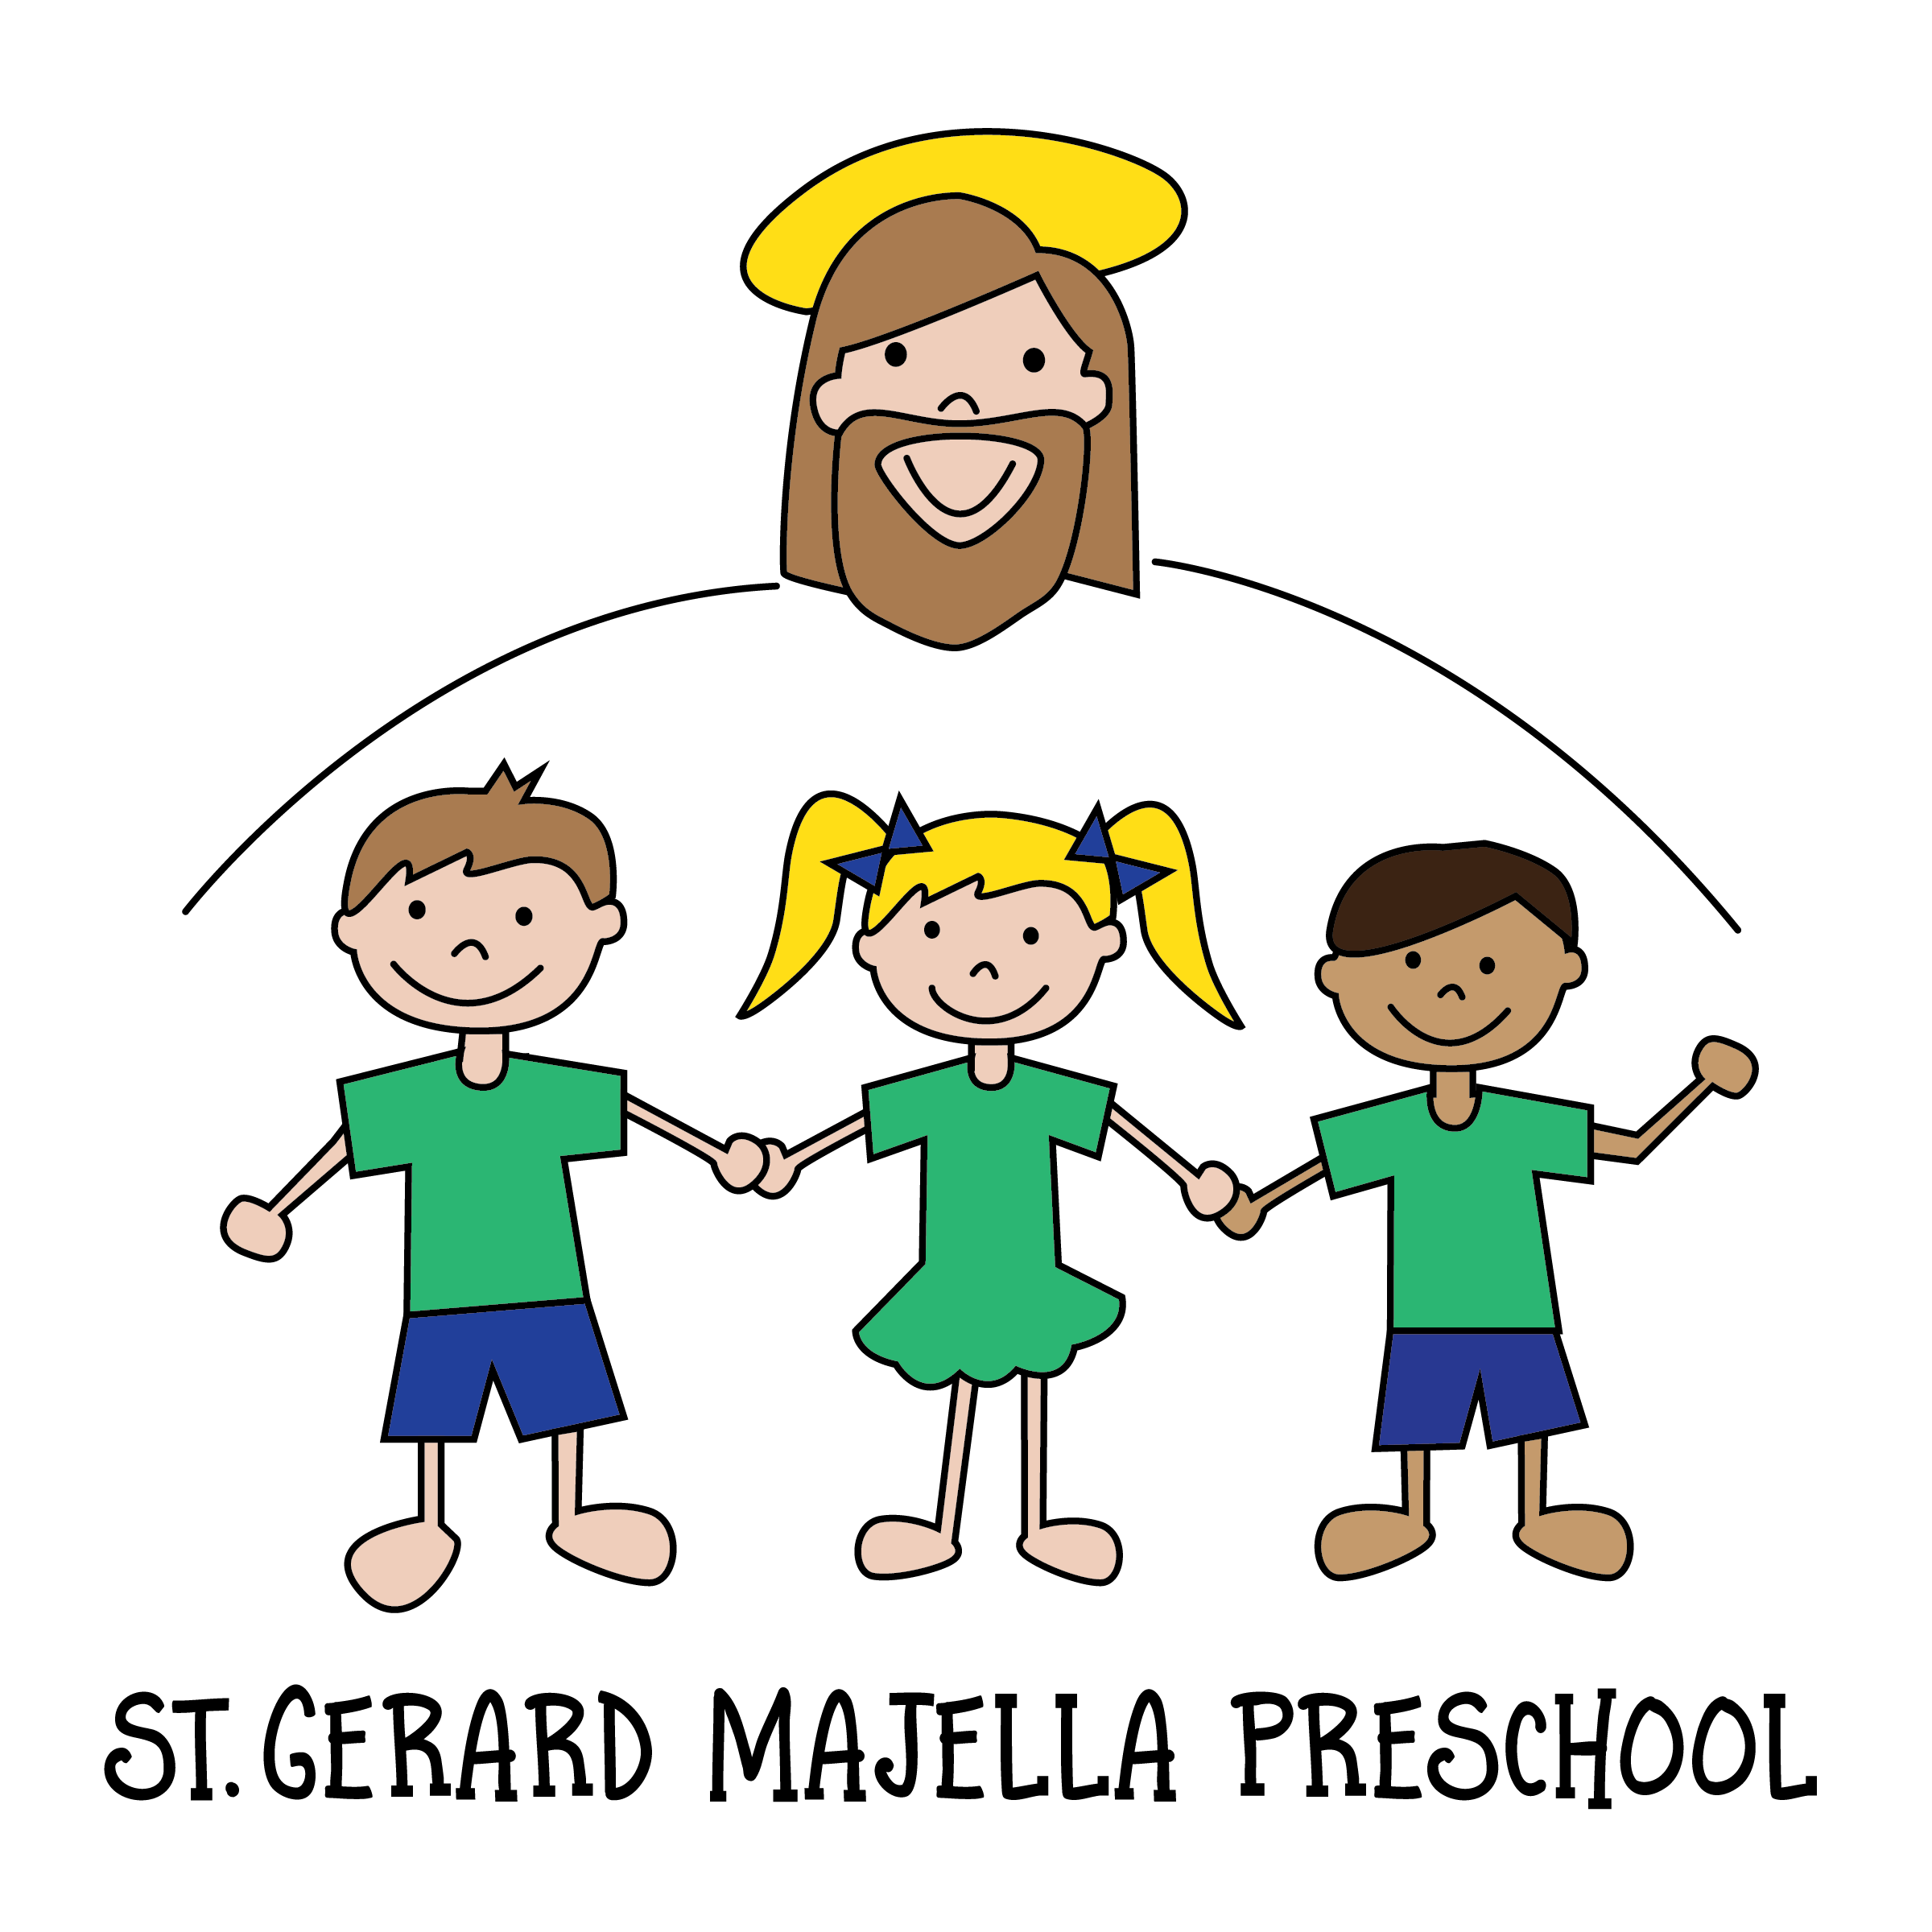 New Preschool Logo